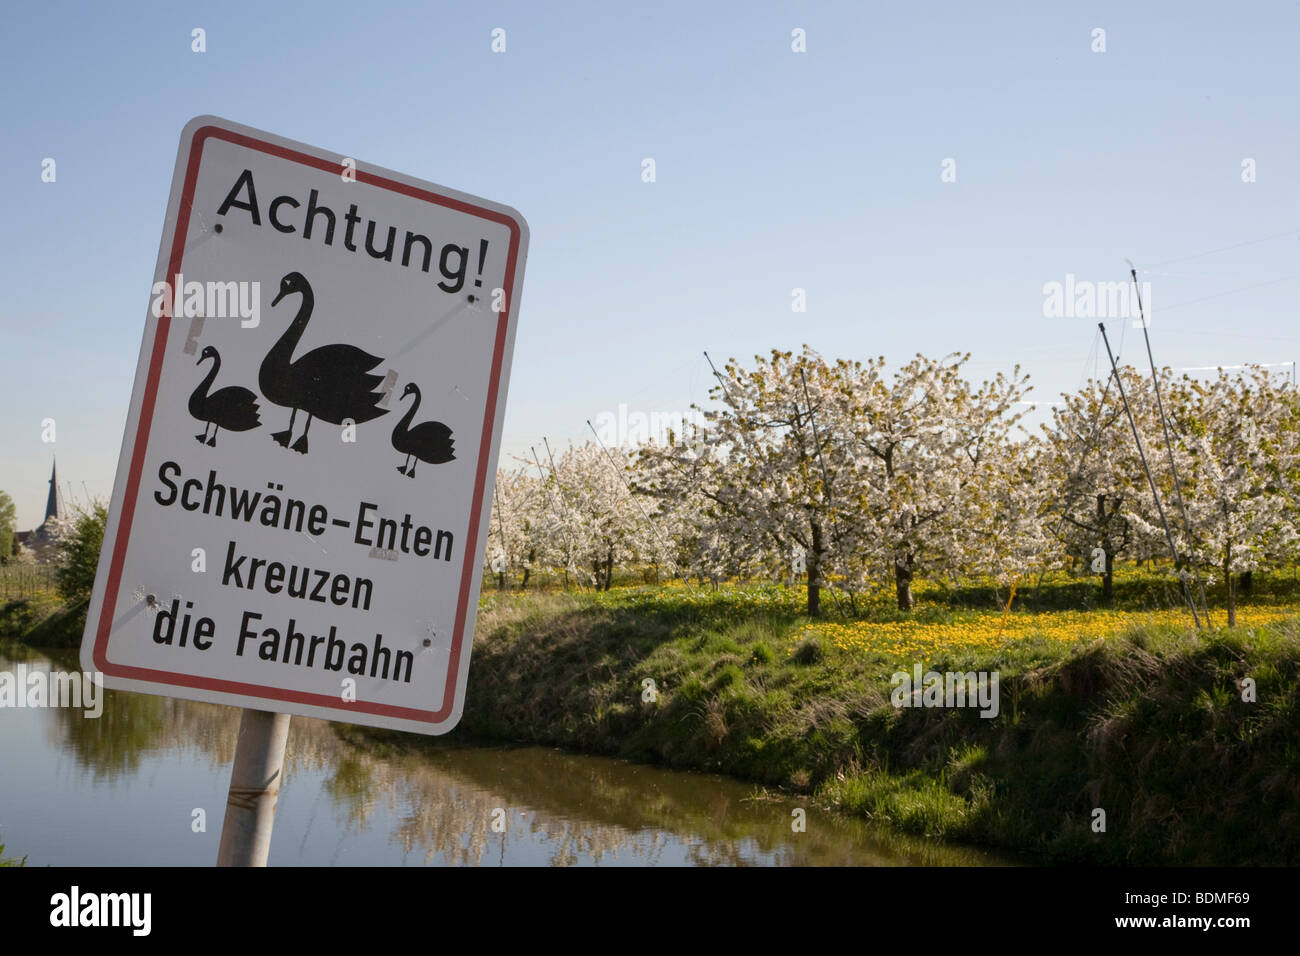 Sign in German 'Attention! Swans - ducks crossing the road', blossoming cherry trees, Altes Land region, - Stock Image